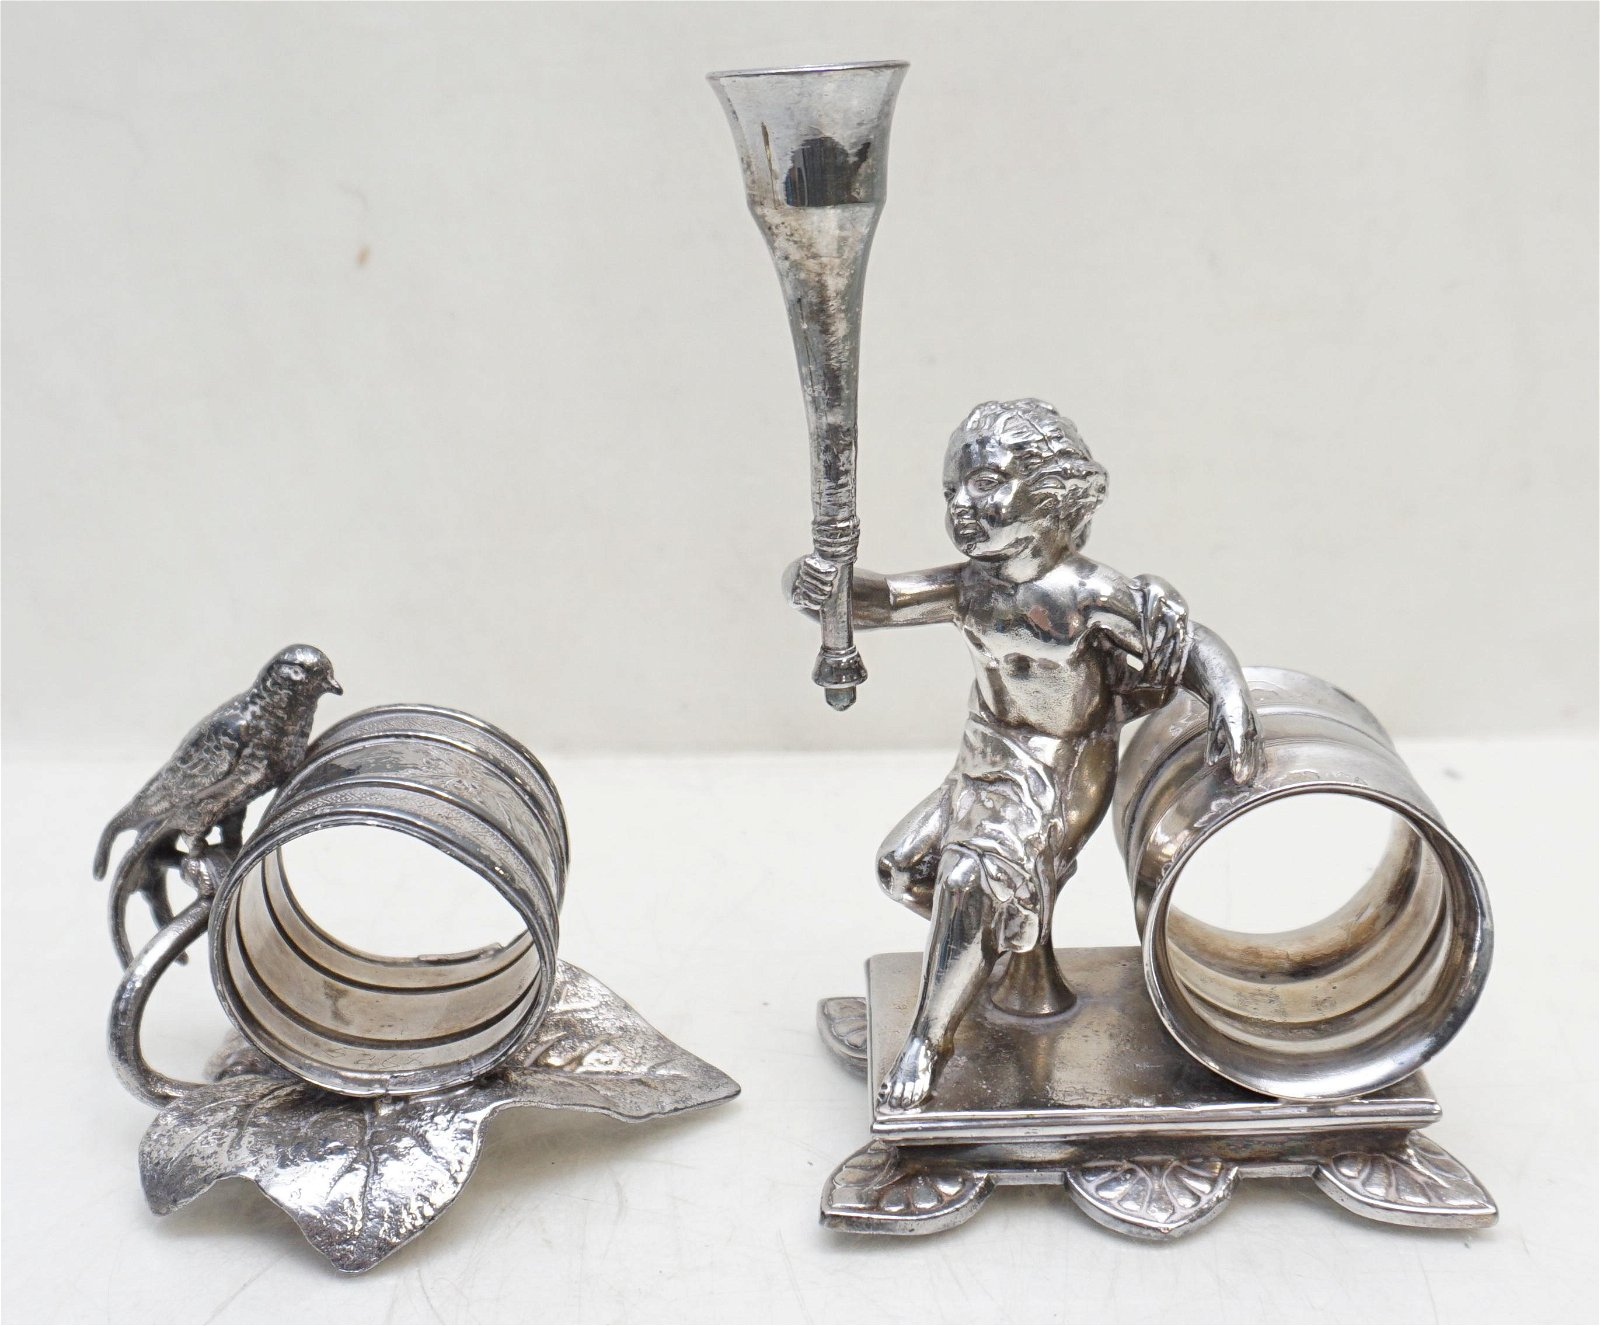 2 VICTORIAN FIGURAL NAPKIN RINGS